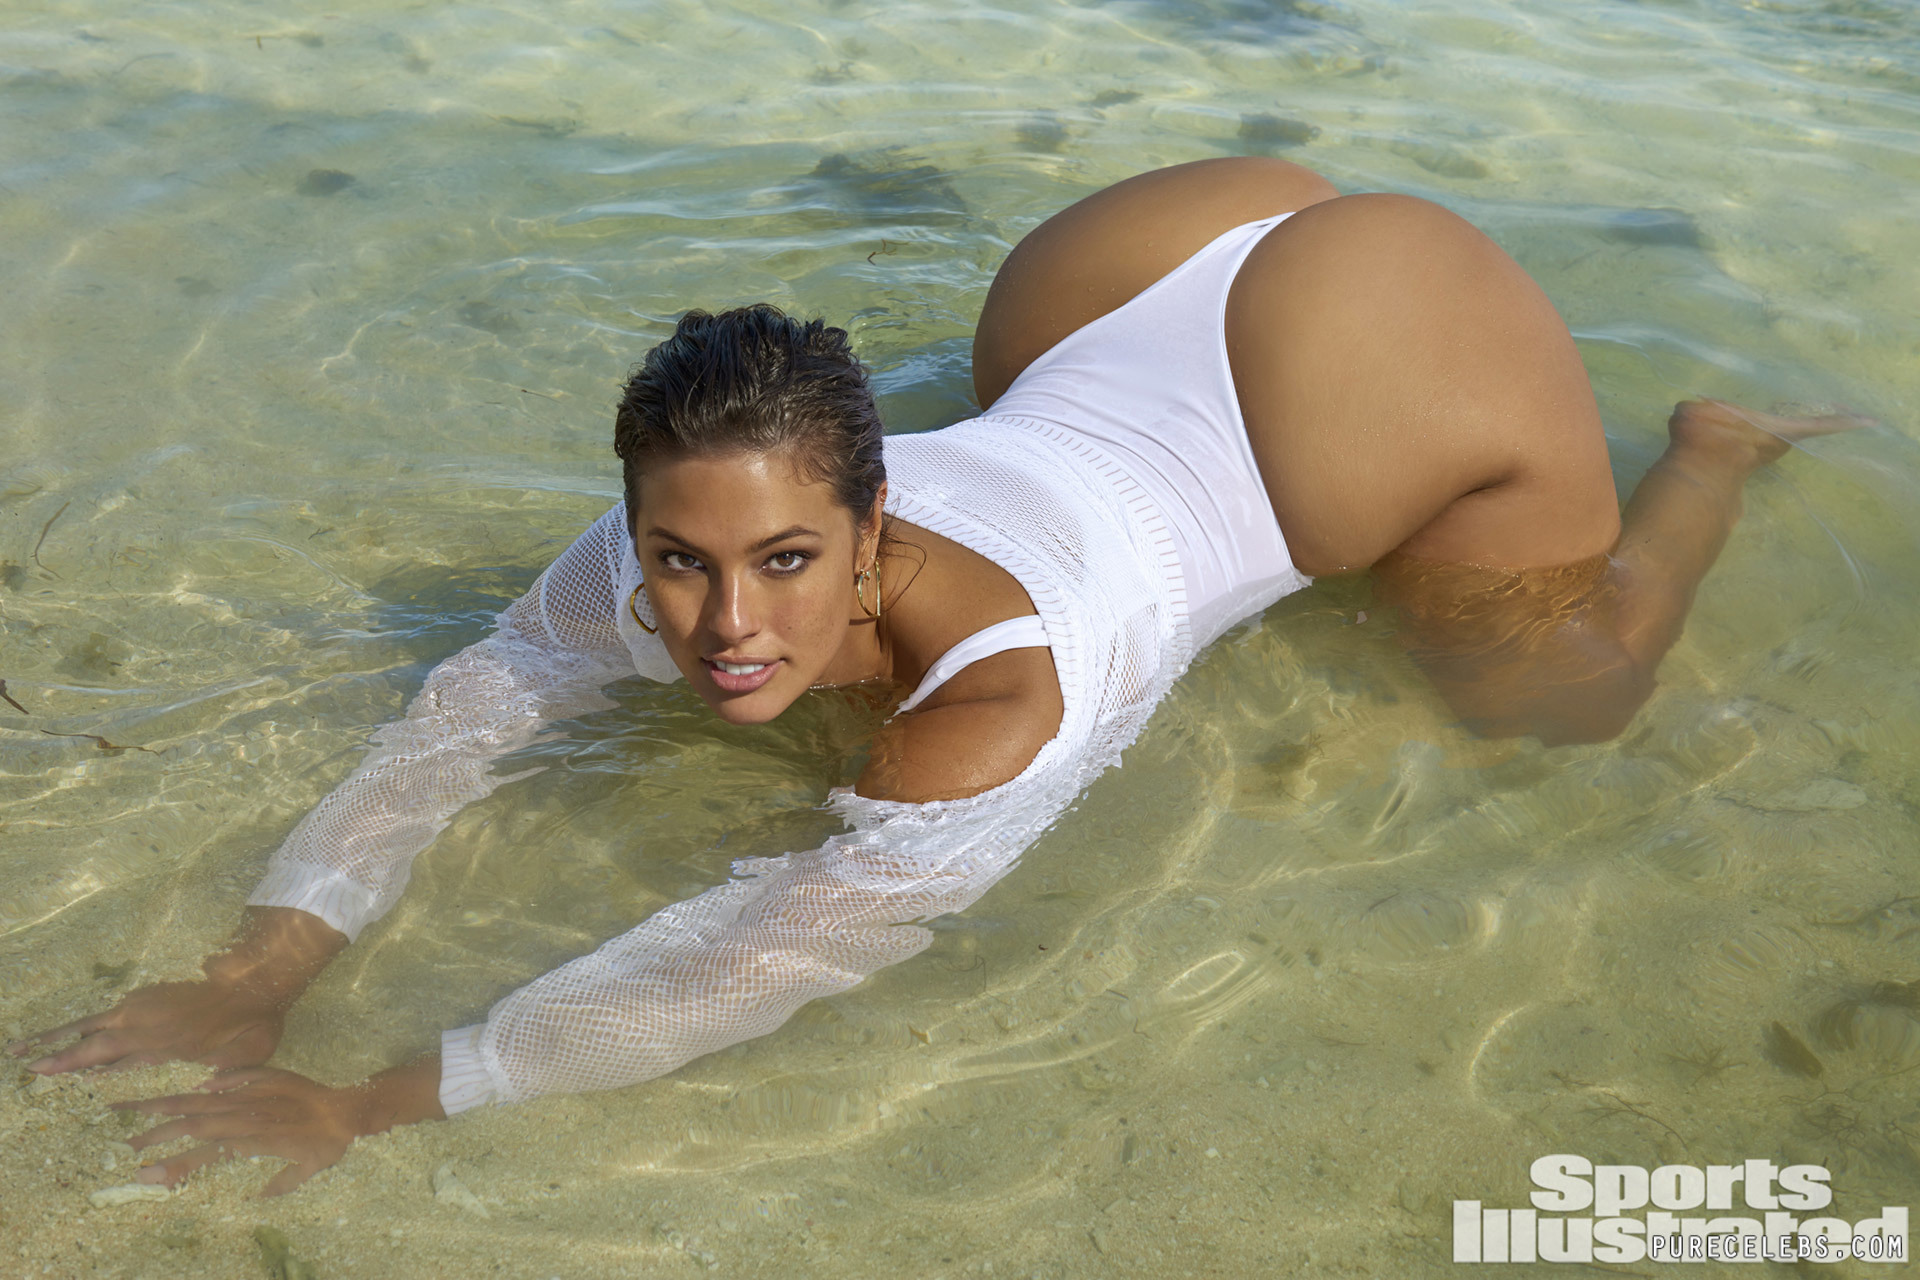 ashley graham has a big bootie.jpg